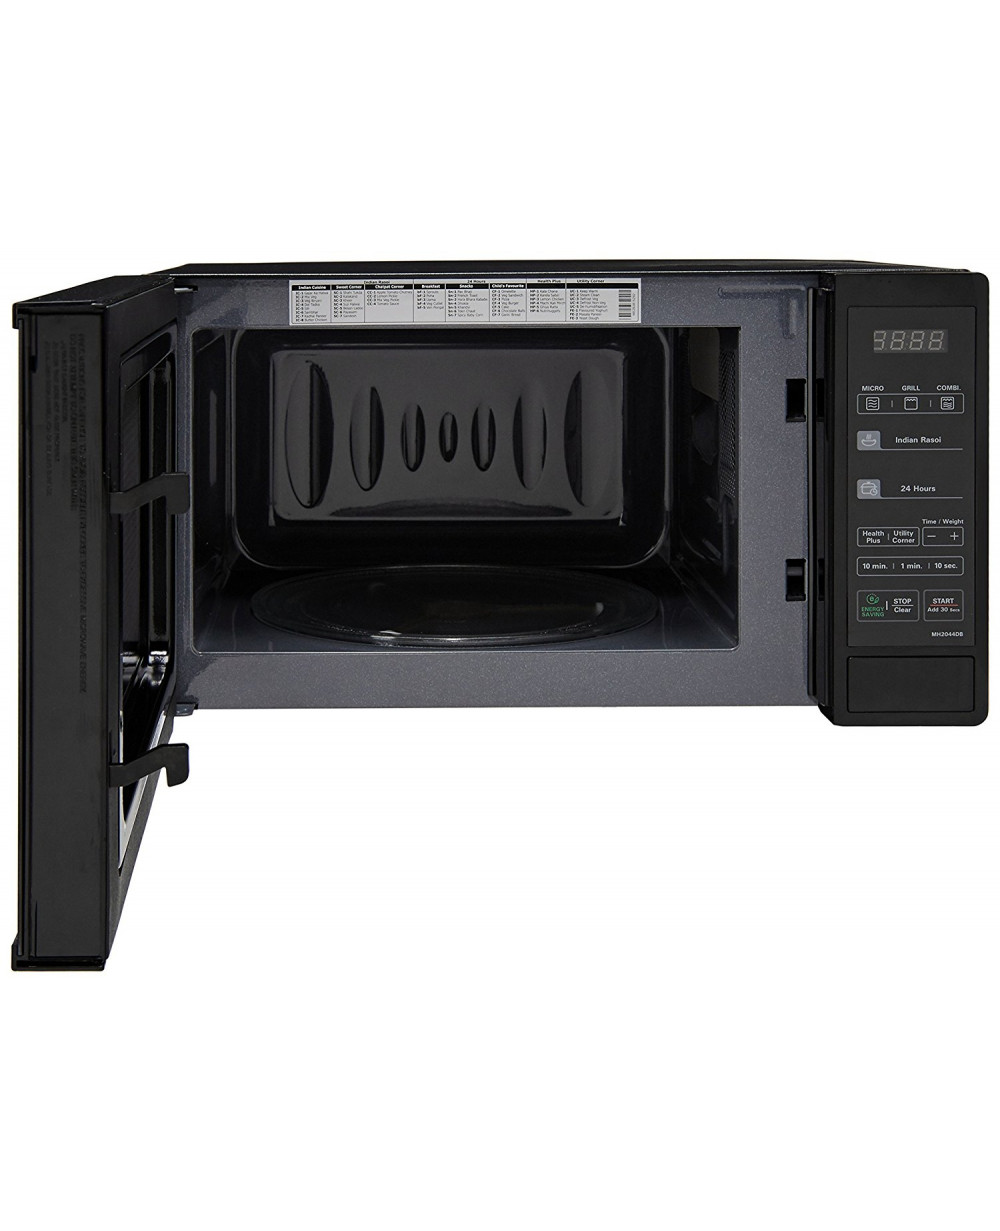 lg 20l grill microwave oven mh2044db black